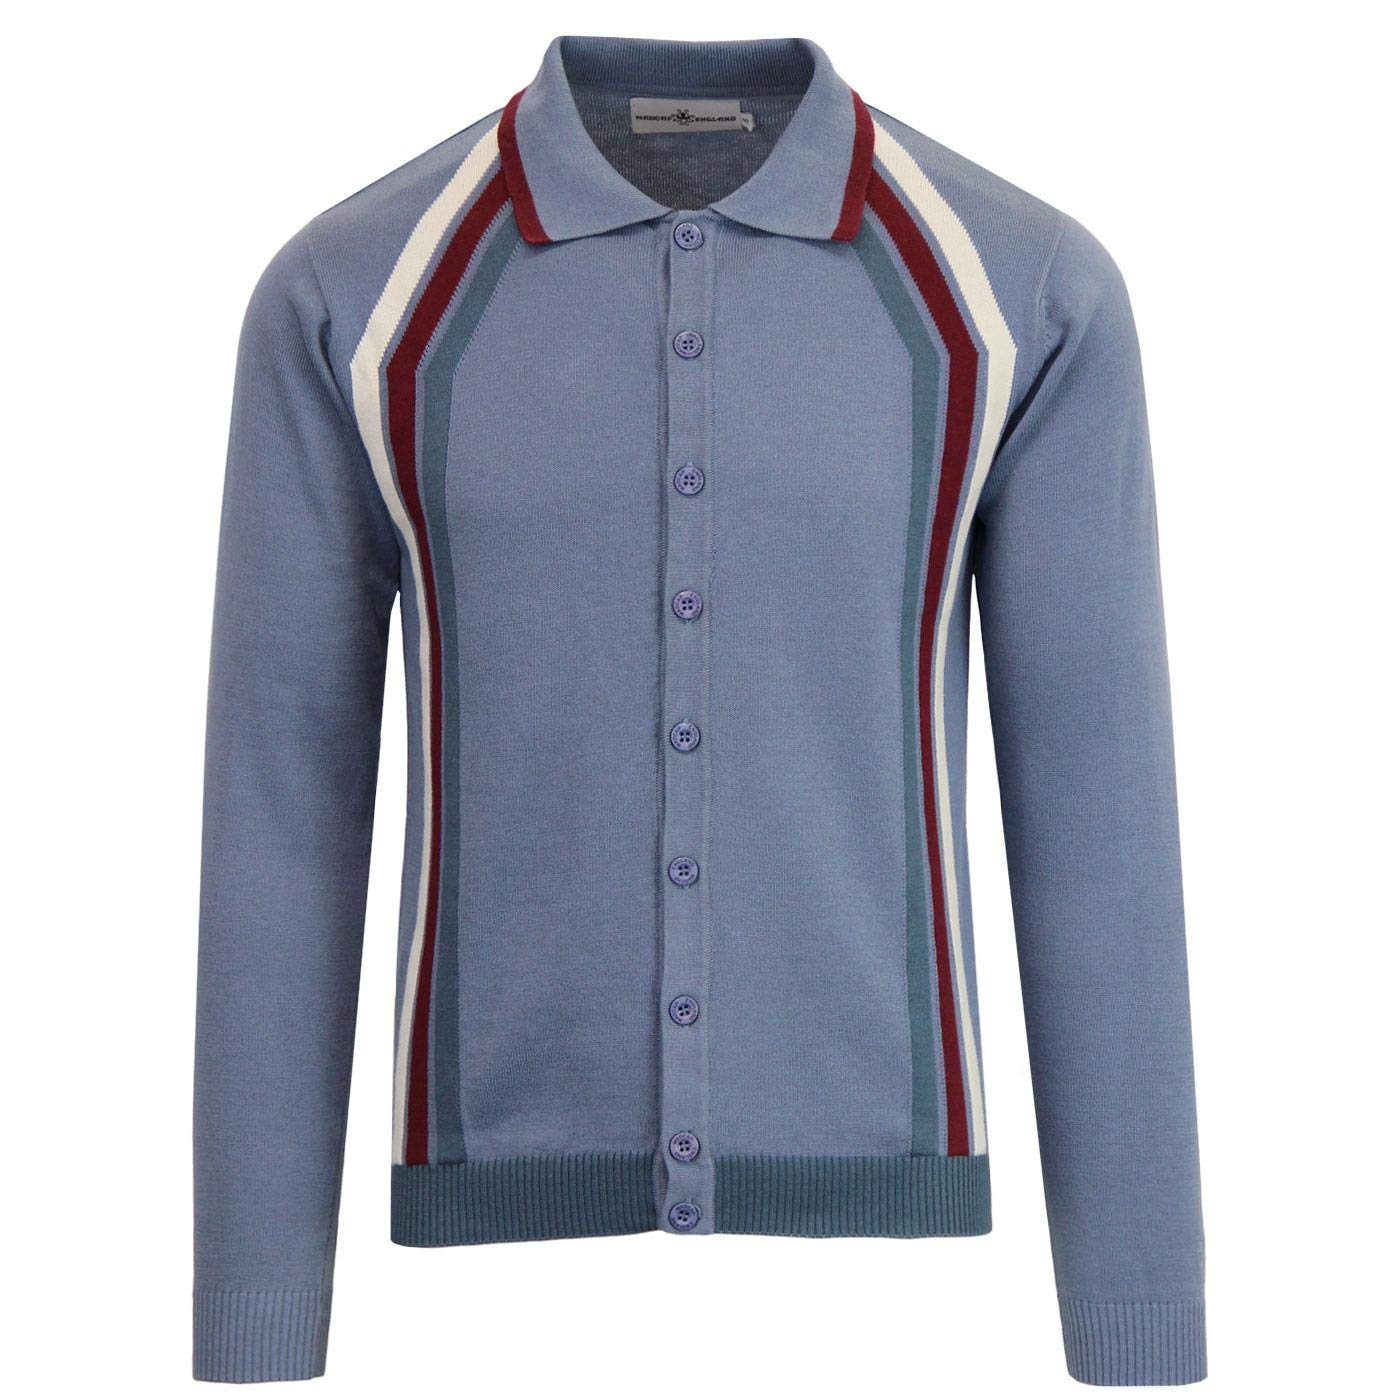 60s 70s Men's Clothing UK | Shirts, Trousers, Shoes Madcap England Blast Mens Retro 50s 60s 70s Mod Knitted Polo Cardigan £39.99 AT vintagedancer.com